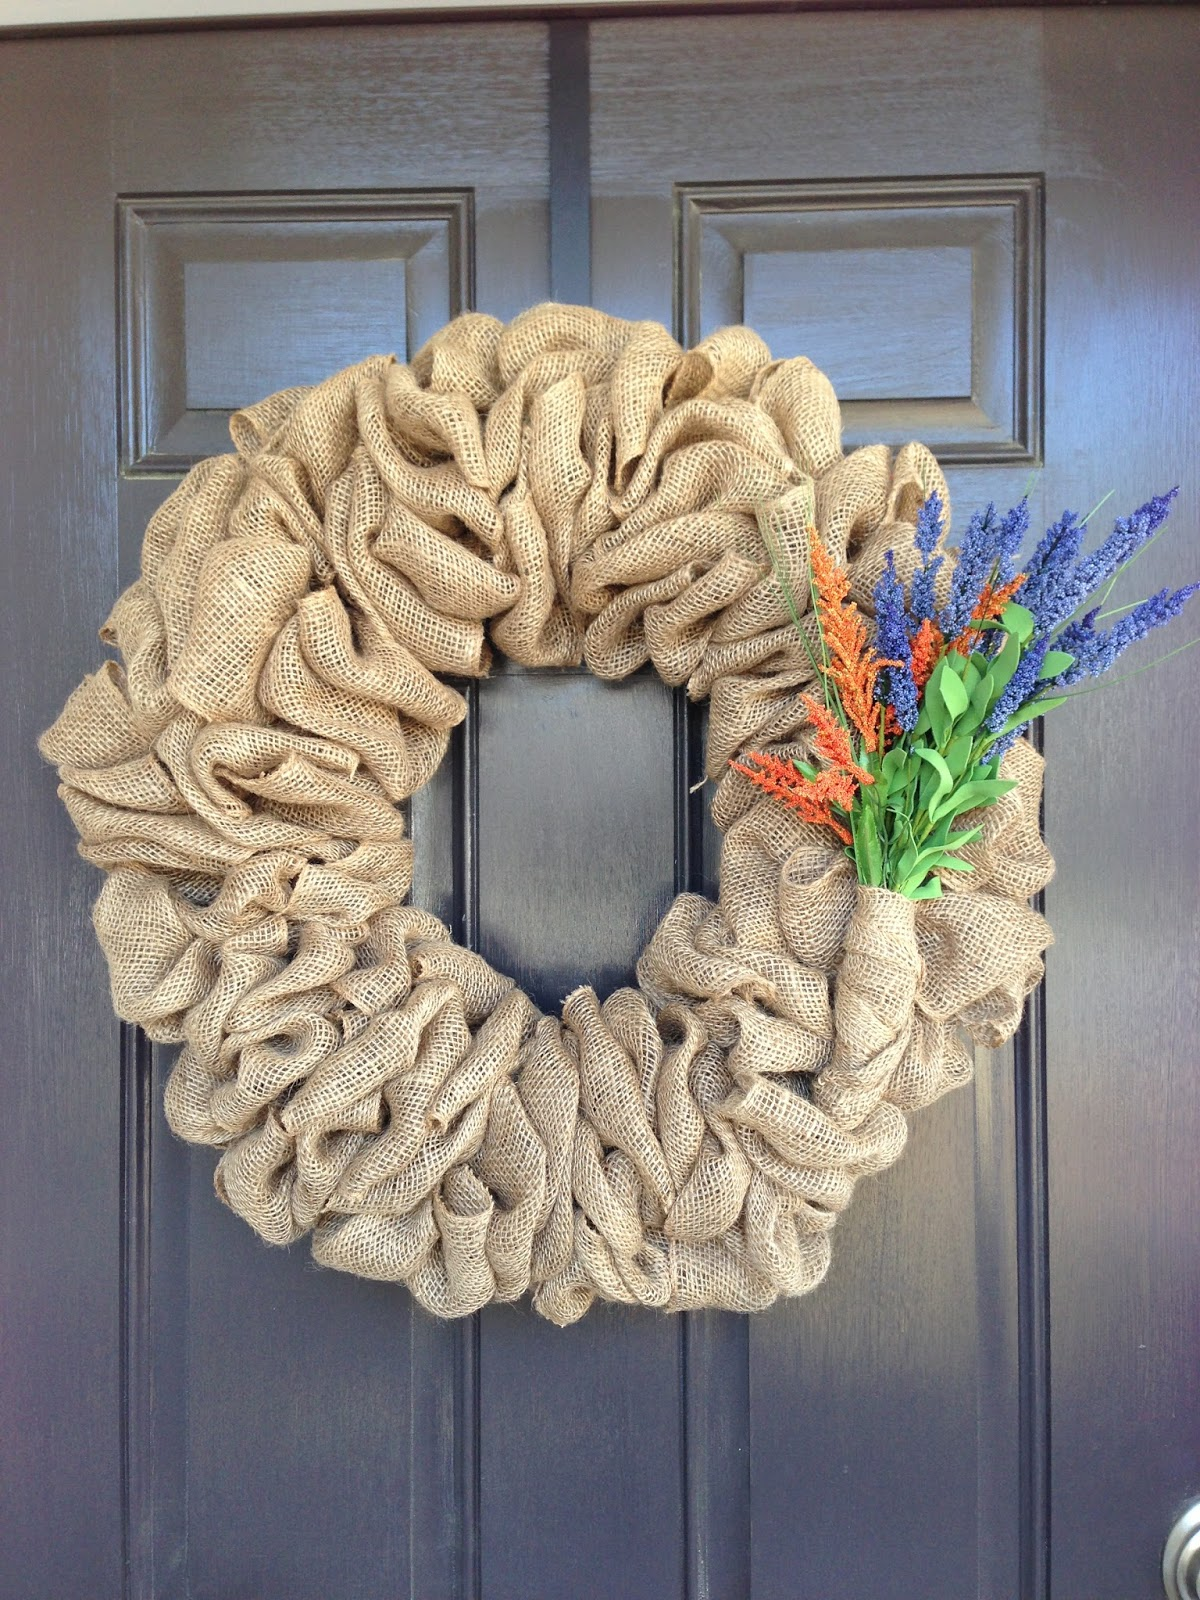 Little lovely leaders burlap wreath How to decorate a wreath